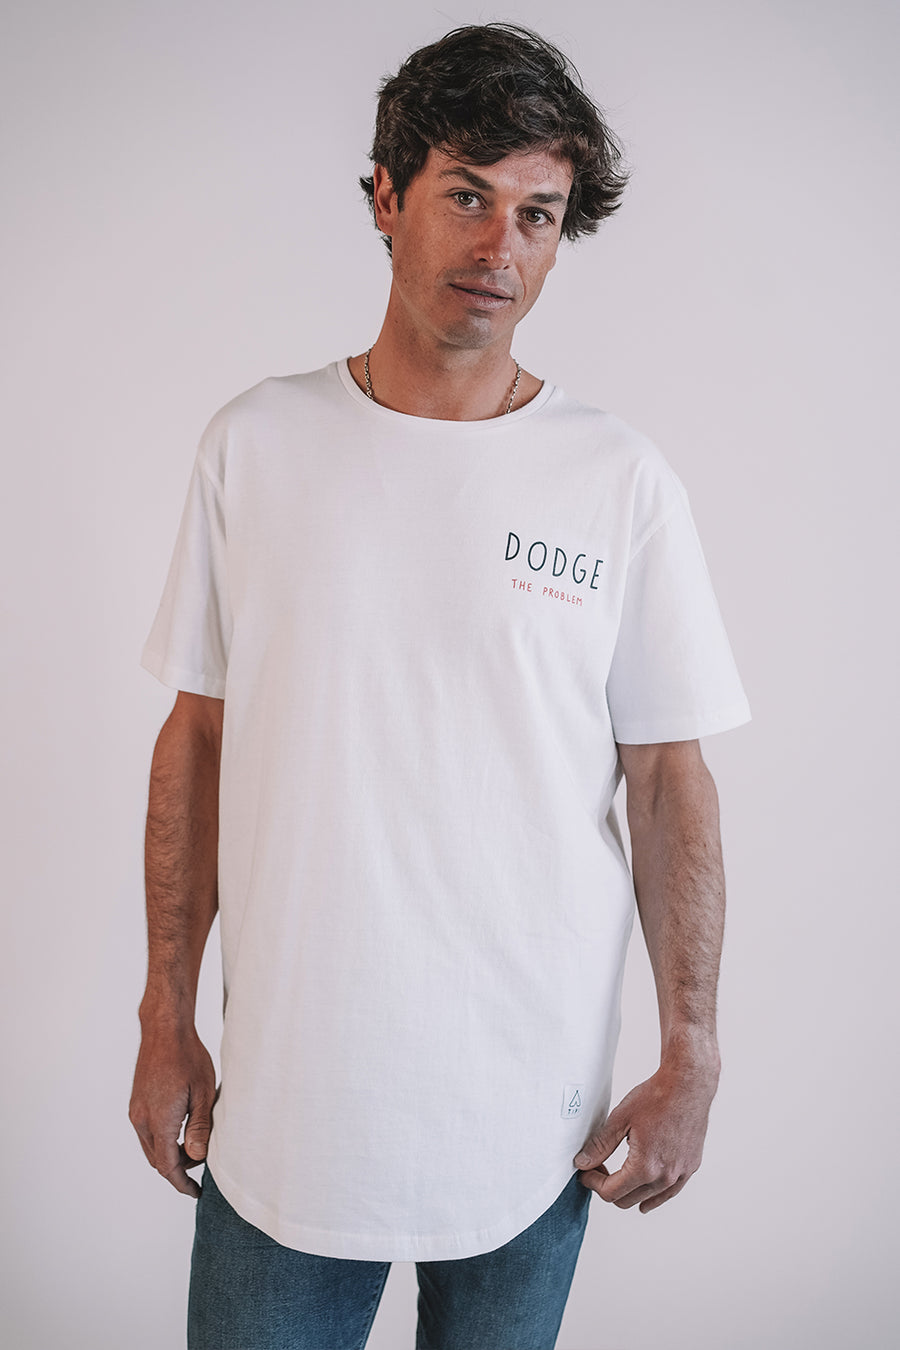 Dodge White T-shirt